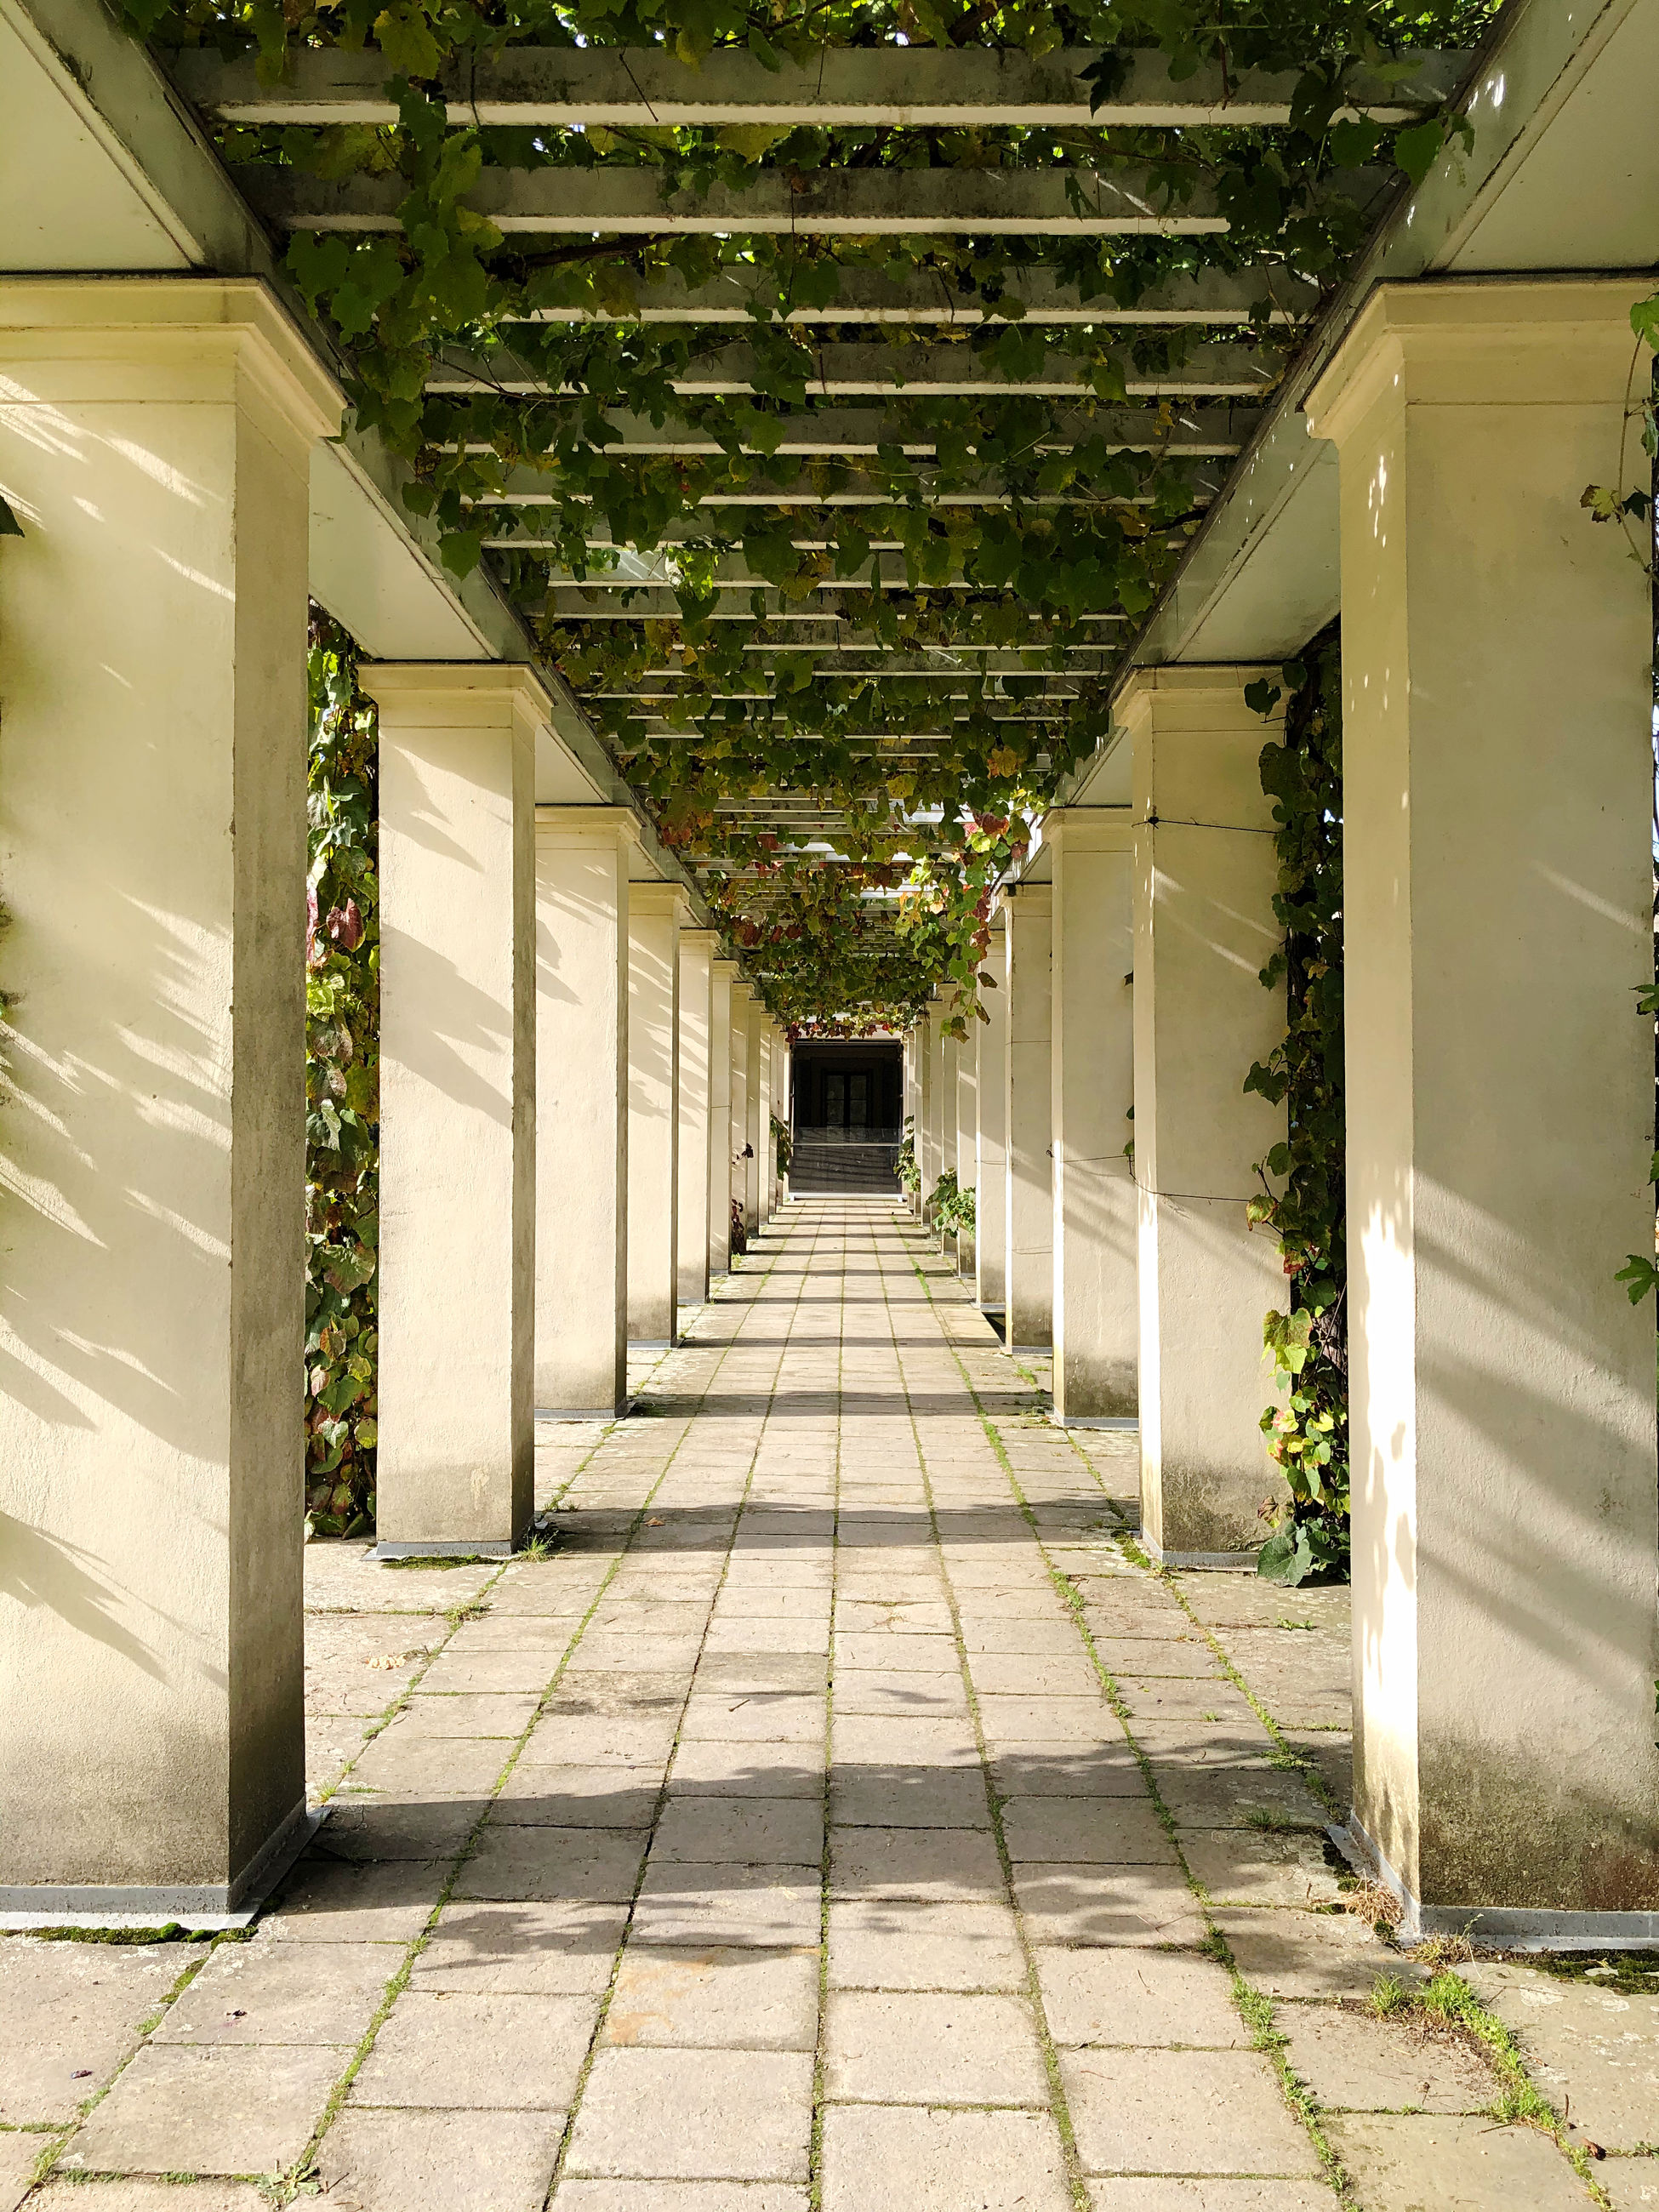 architecture, direction, the way forward, built structure, no people, building, day, arcade, corridor, architectural column, diminishing perspective, footpath, plant, empty, outdoors, flooring, entrance, sunlight, nature, ceiling, colonnade, tiled floor